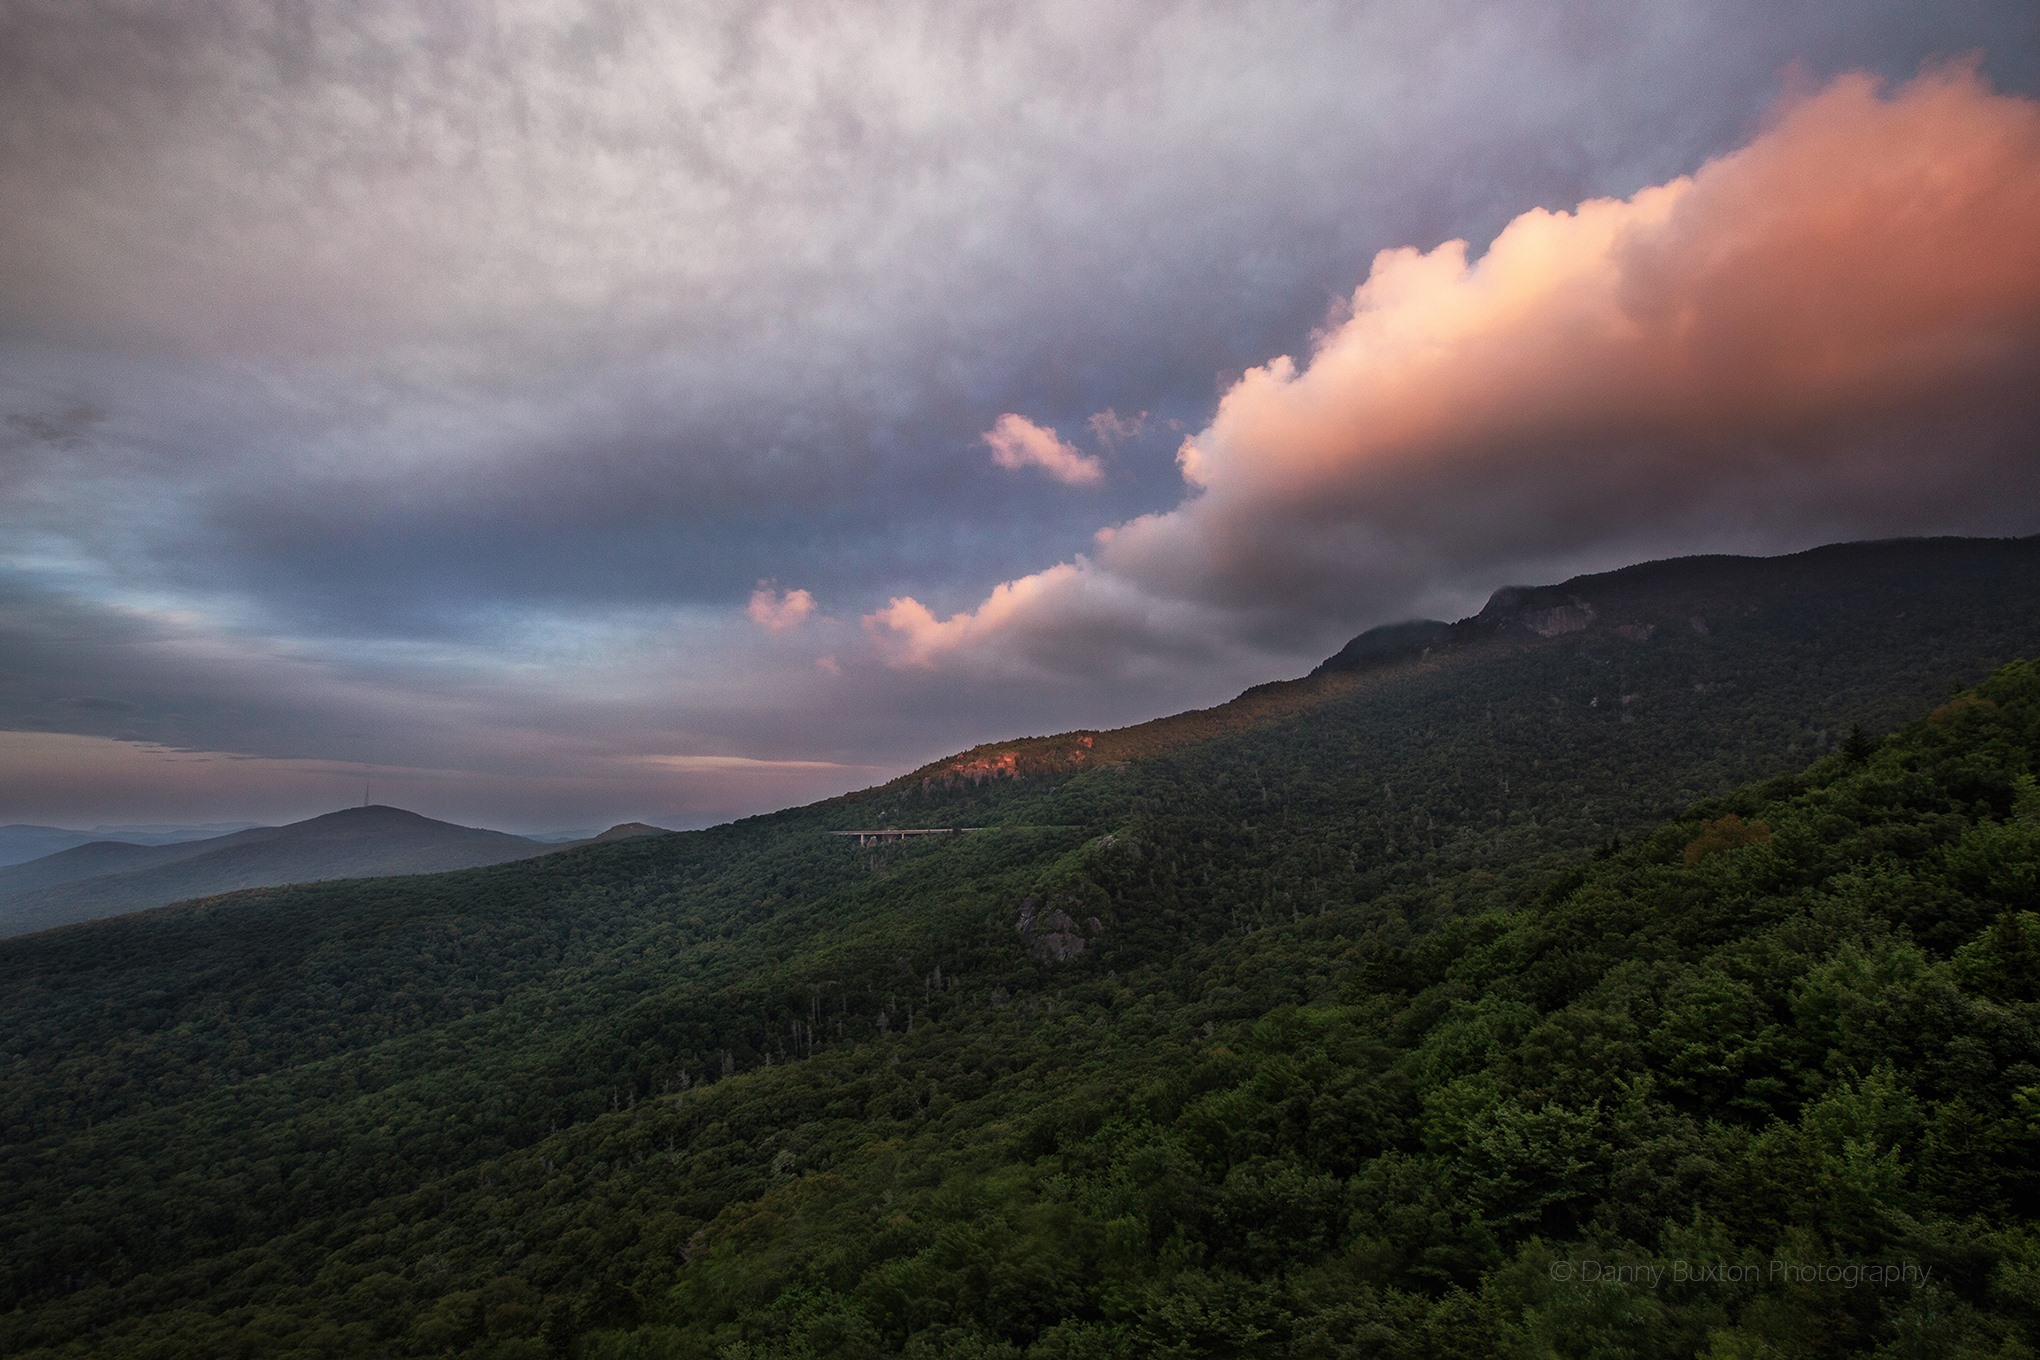 July 18_Grandfather Mtn_Danny Buxton Photography